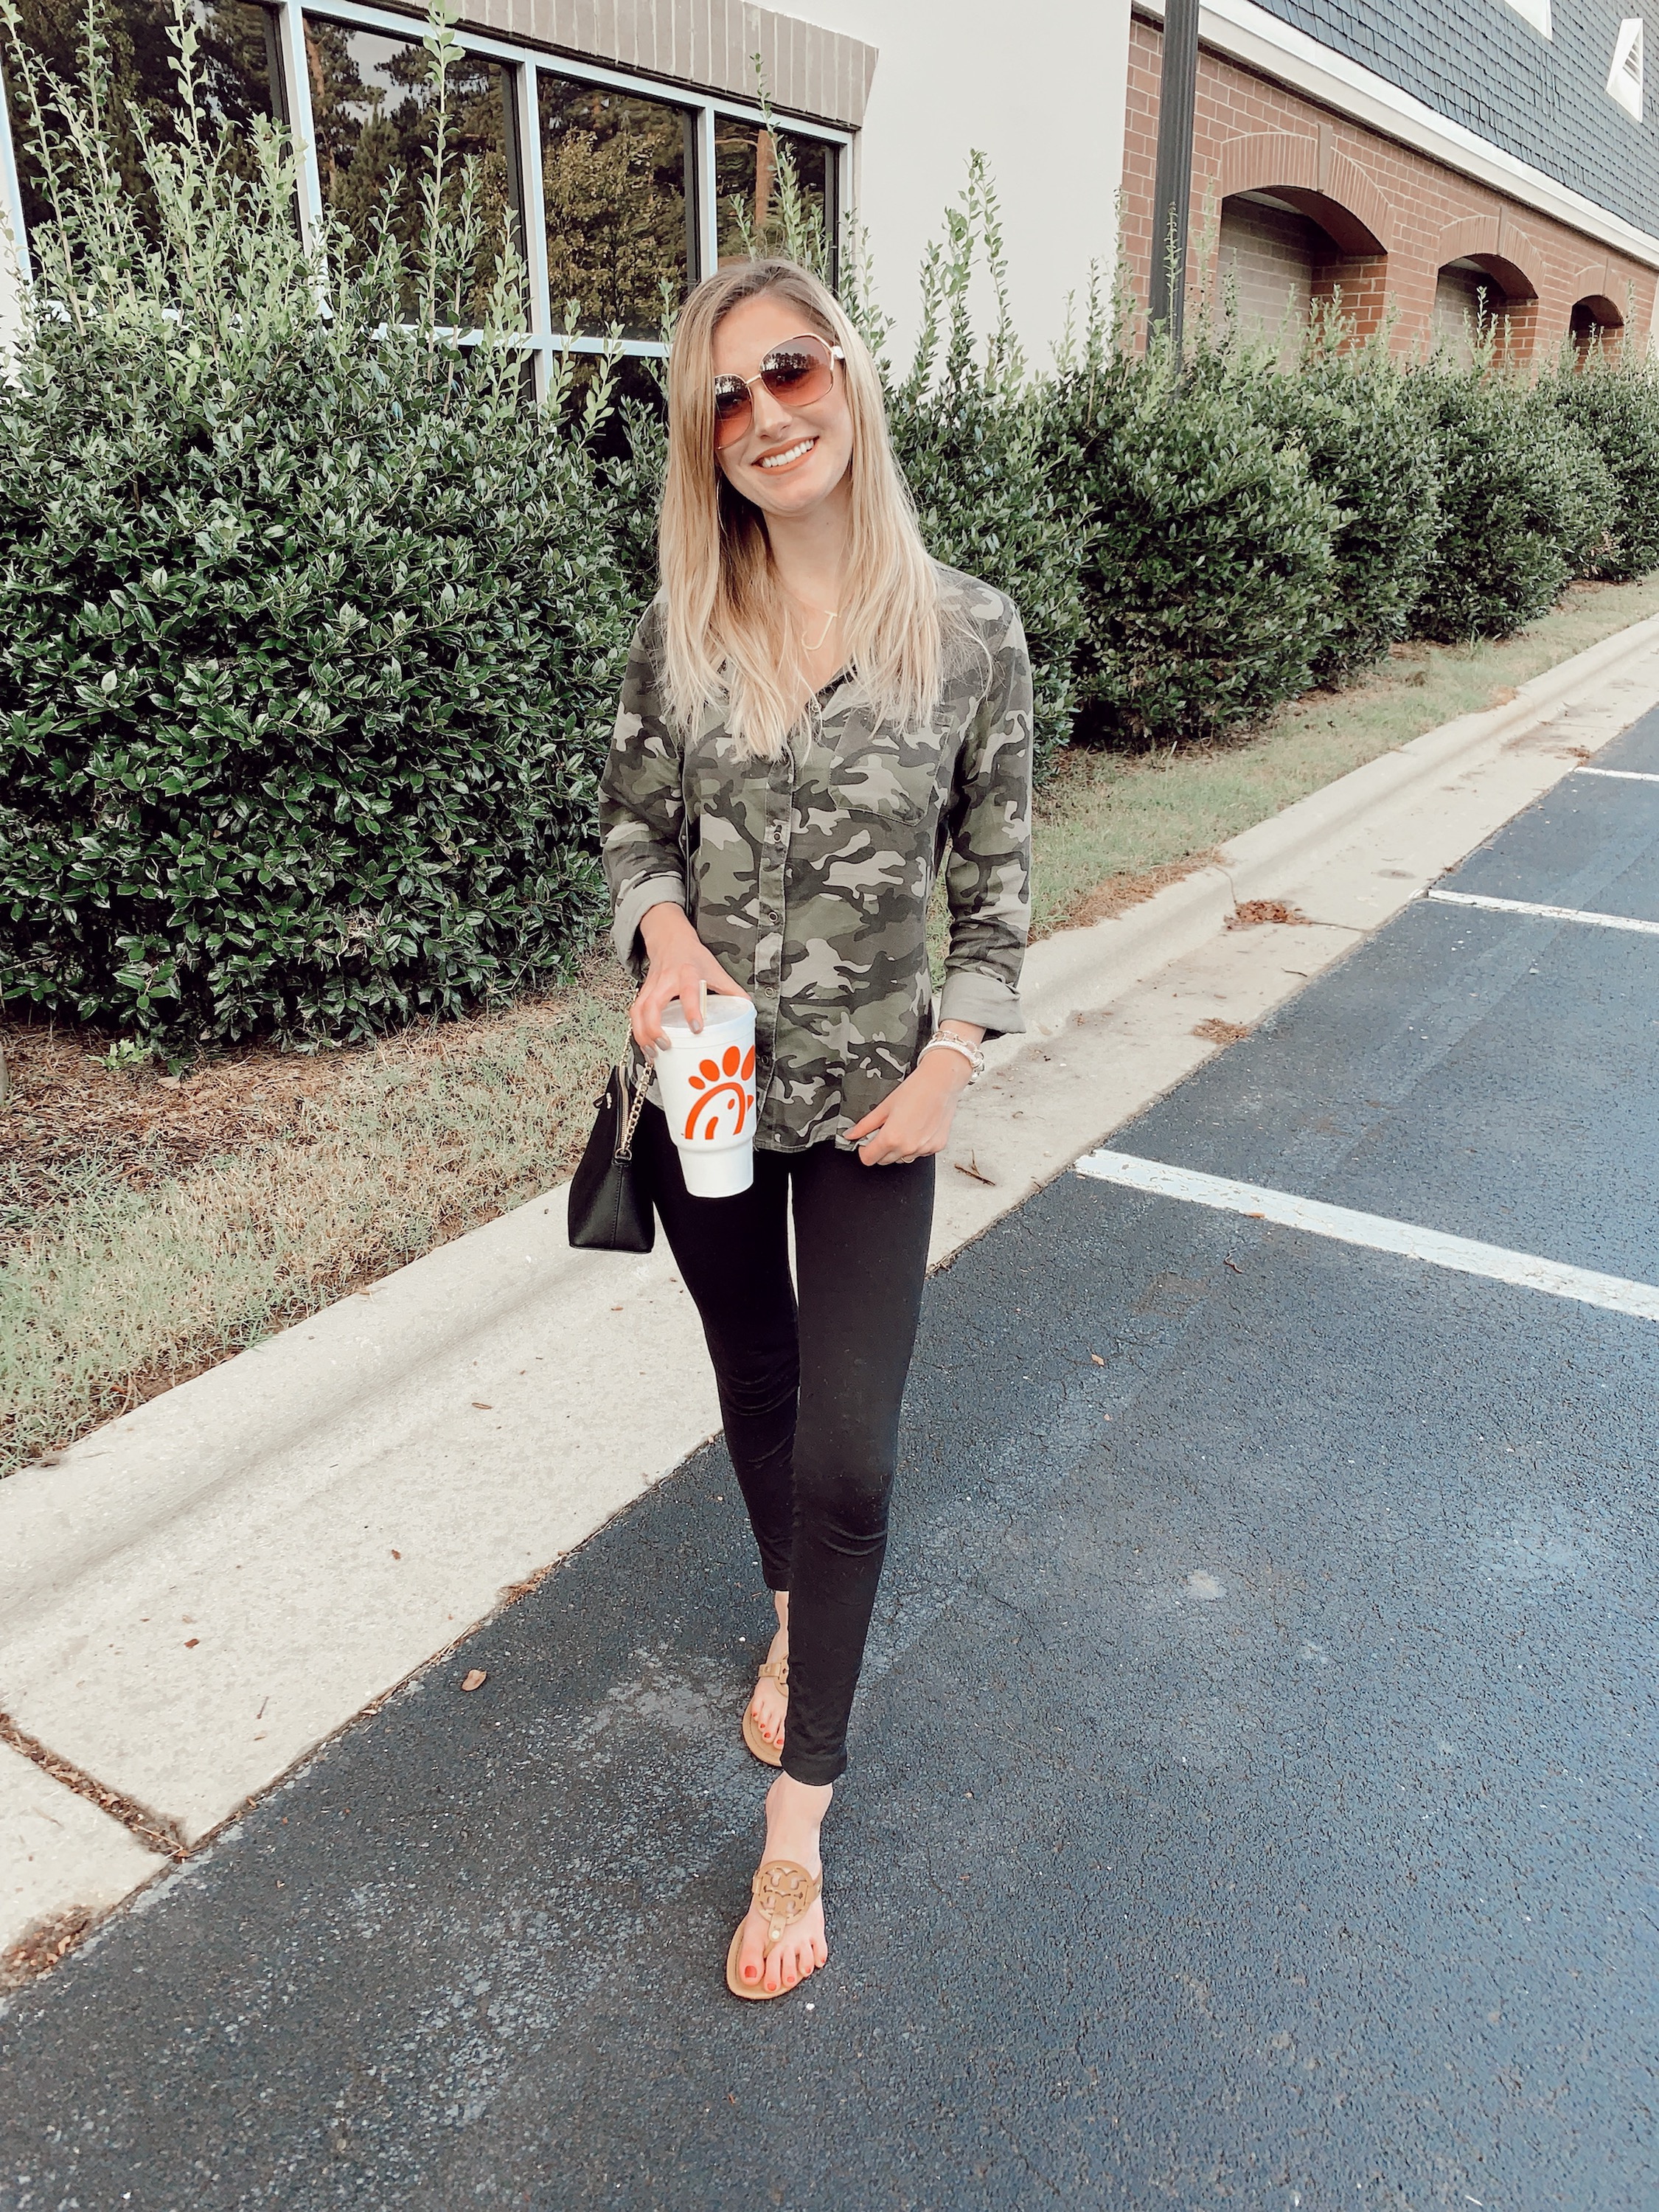 Casual Style | Camo button up top from Walmart, black leggings, and Tory Burch sandals | North Carolina Fashion & lifestyle blogger, Jessica Linn, sharing an Instagram post roundup on Linn Style.